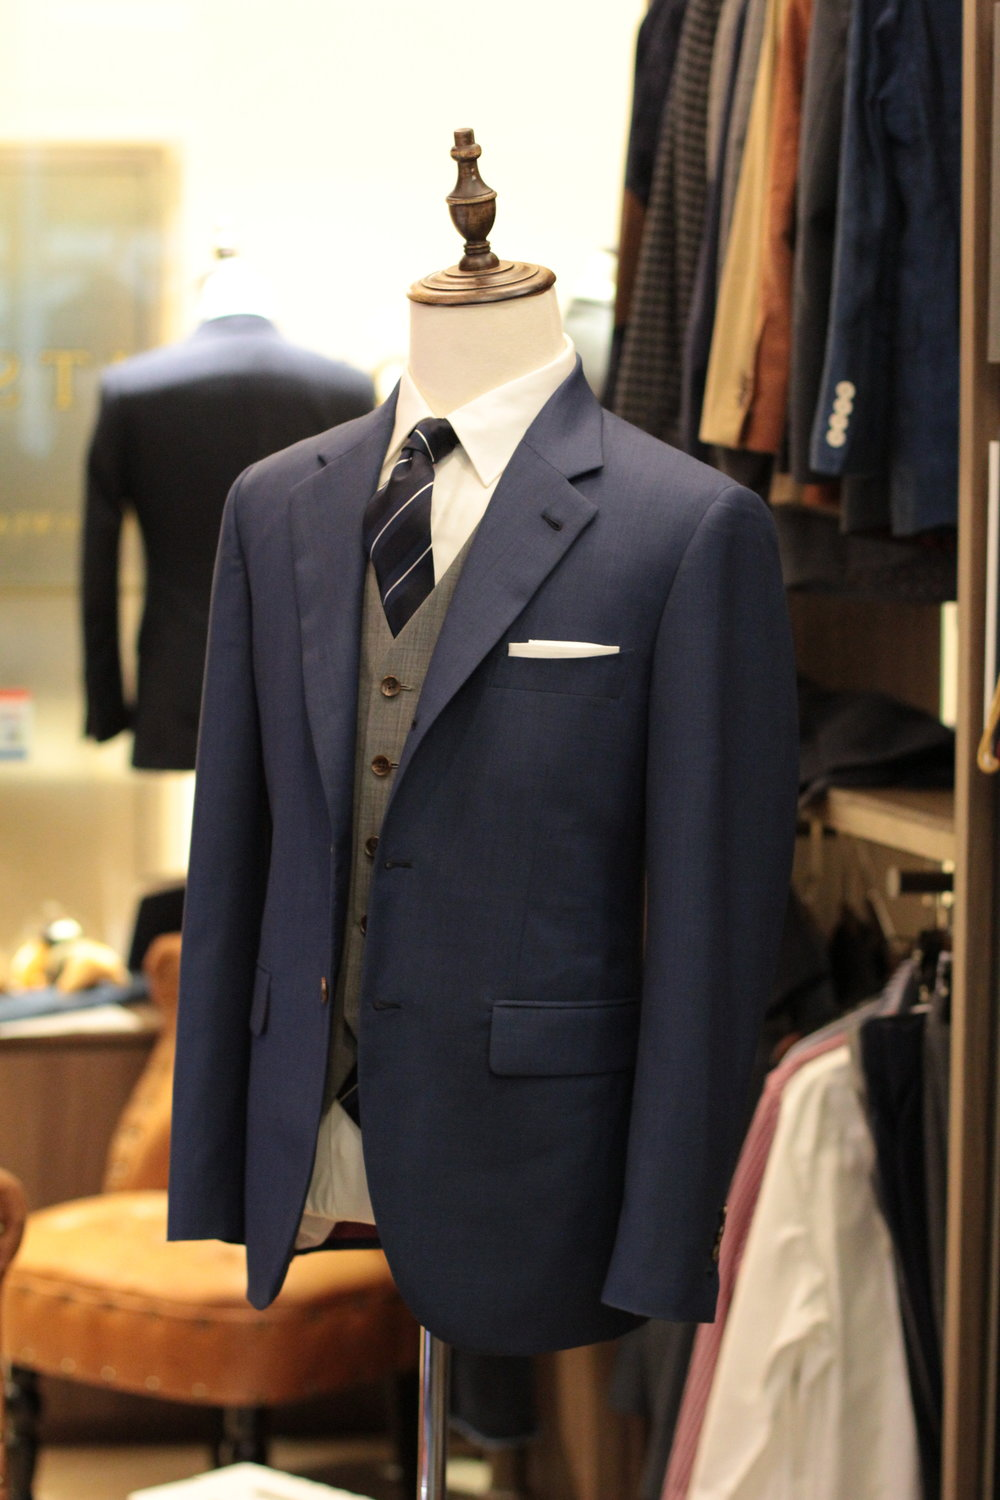 Mr Skelter | made to measure | bespoke tailor singapore1.JPG